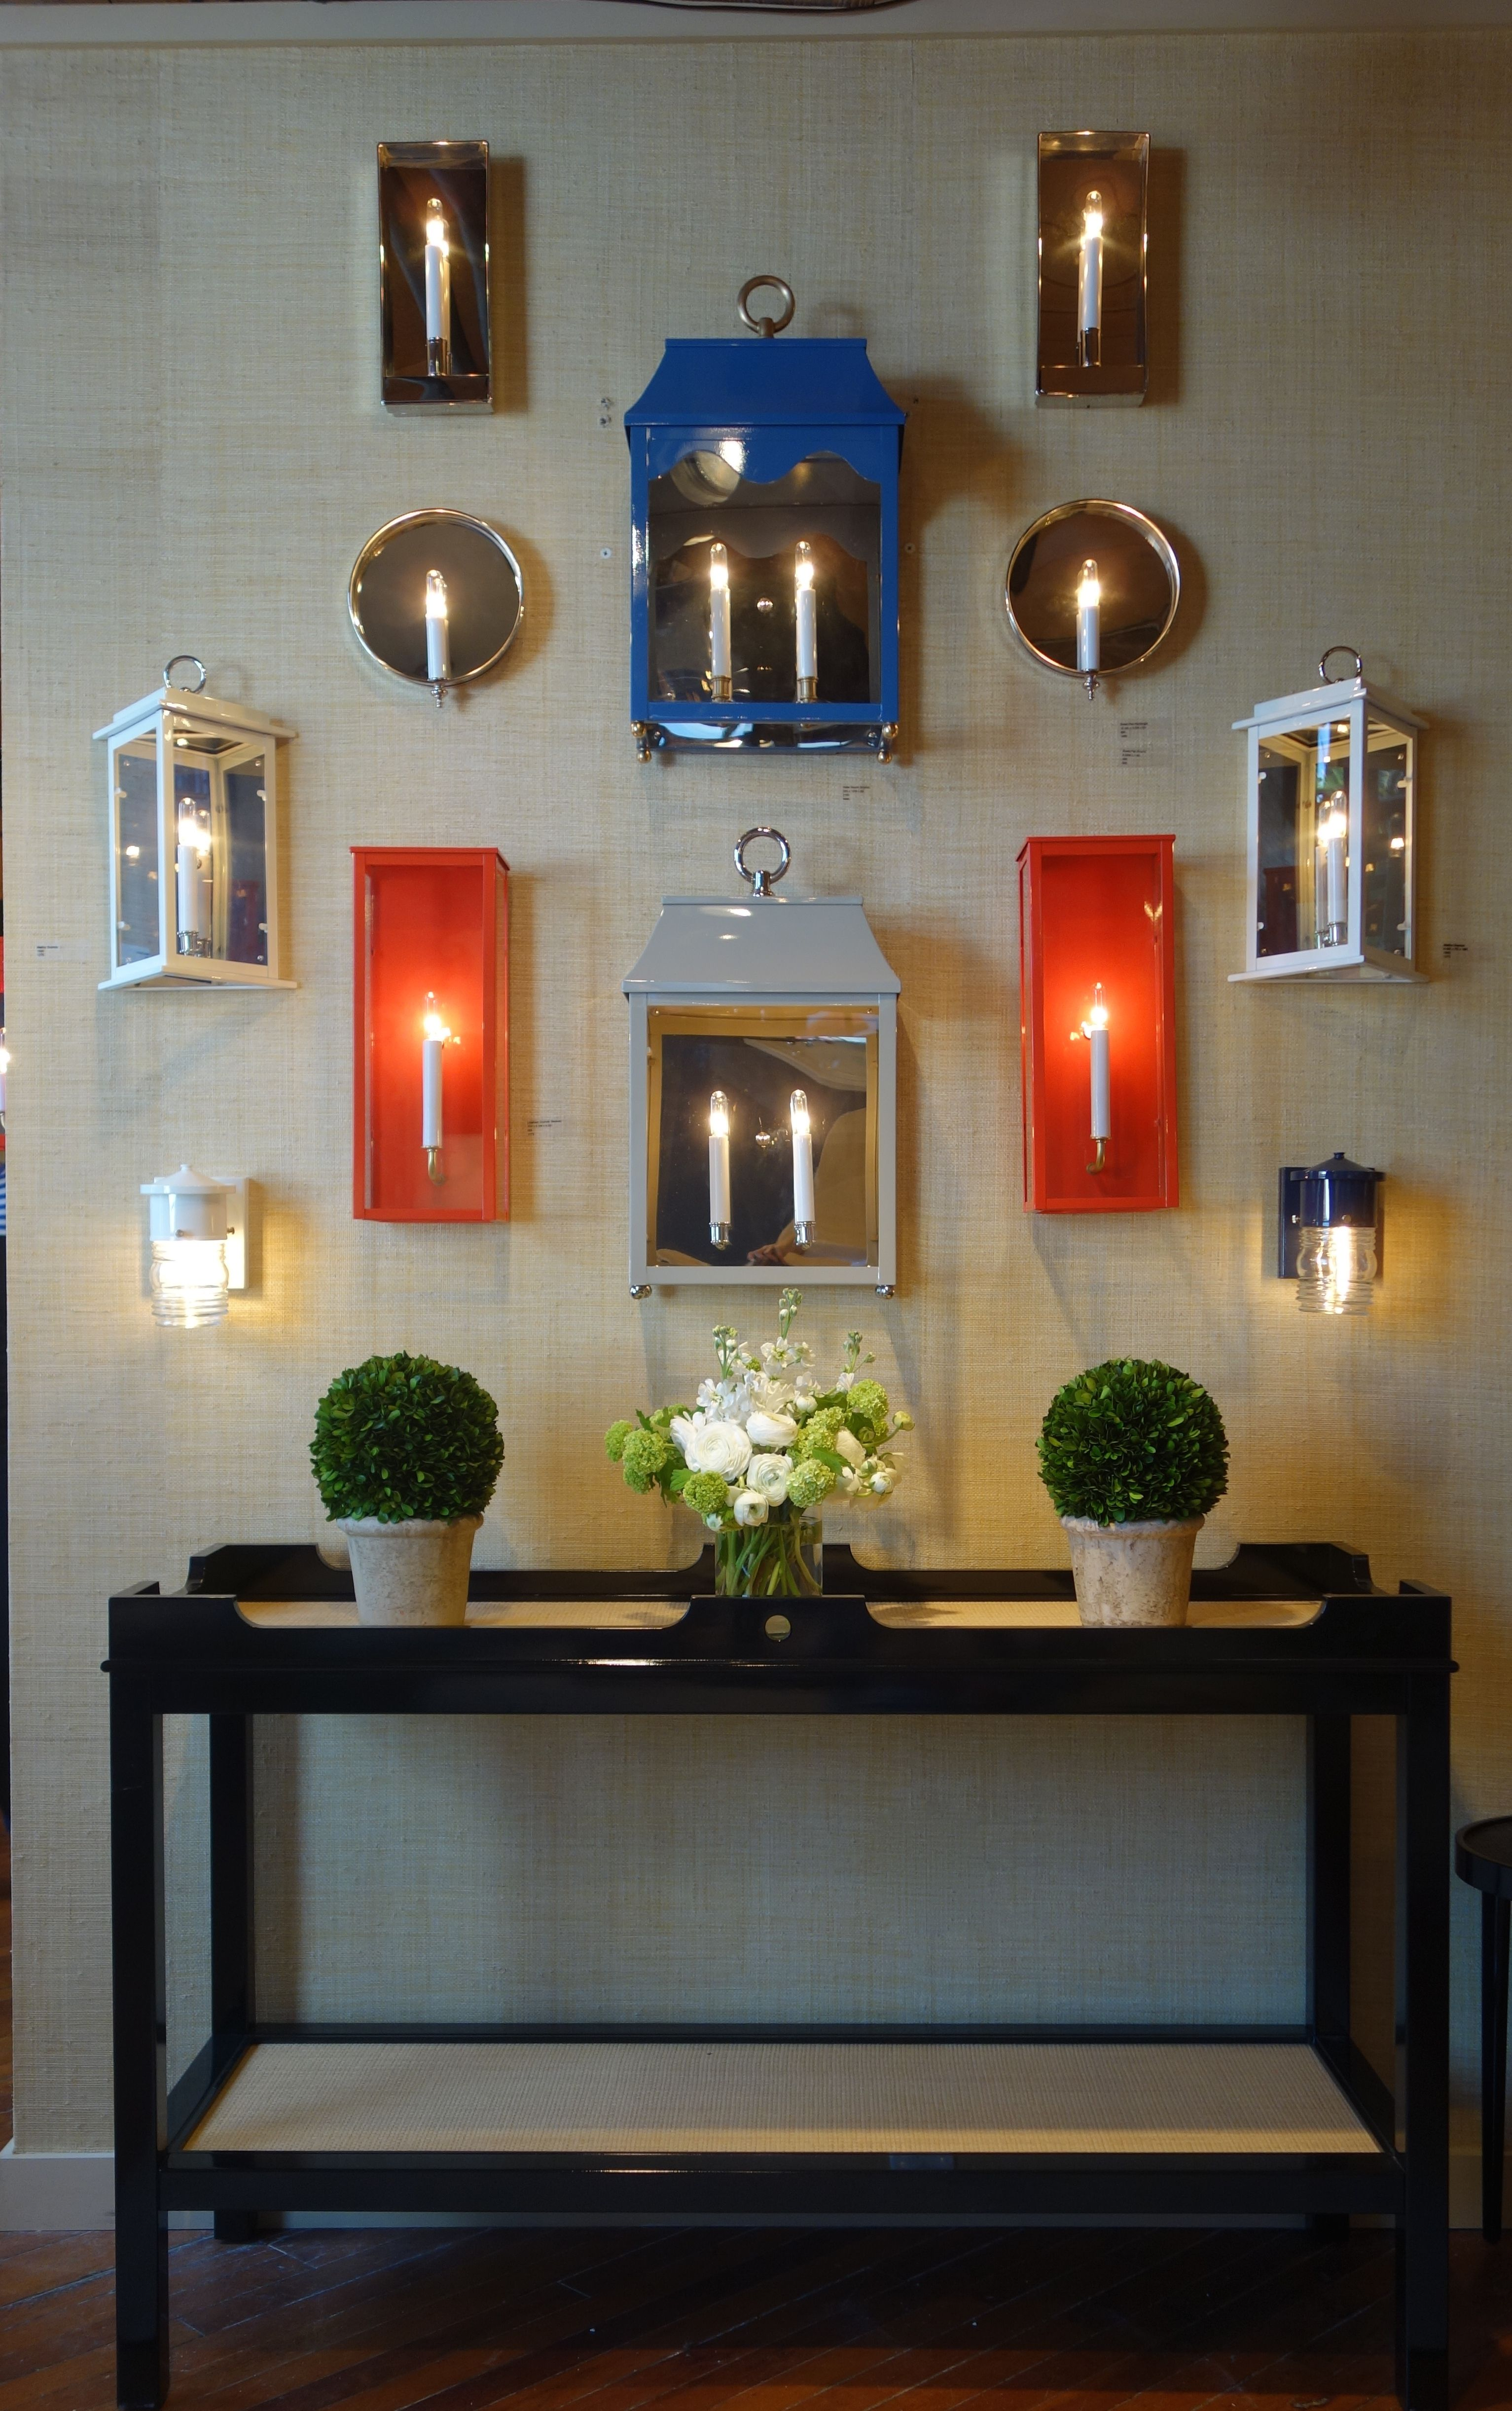 oomph Sconce wall at High Point & oomph Sconce wall at High Point | lighting | Pinterest | High point ...